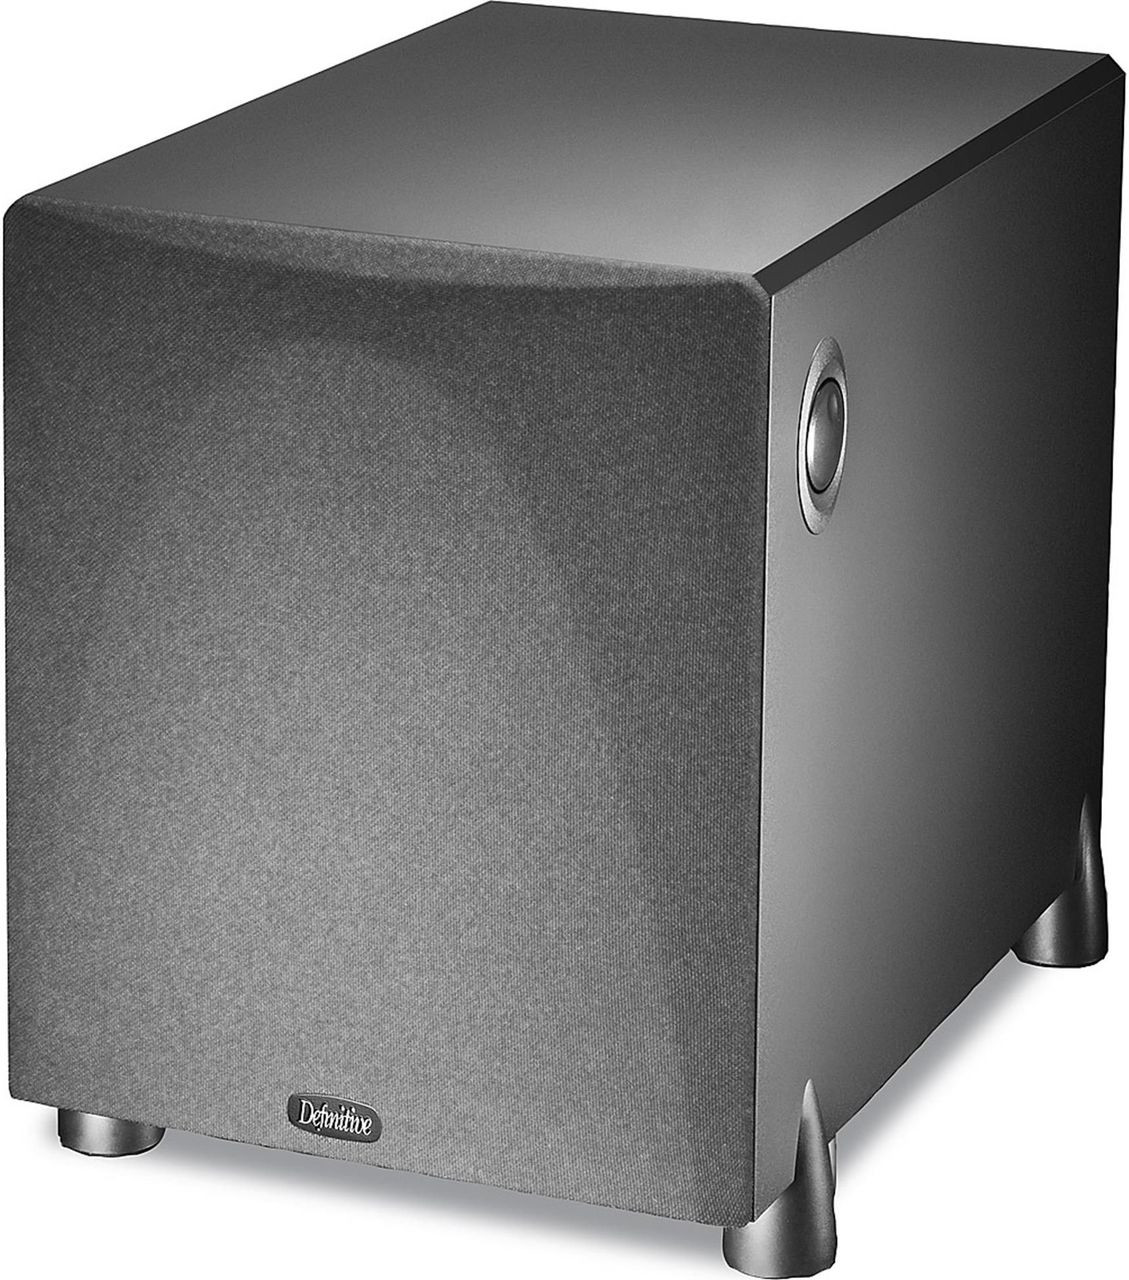 """Definitive Technology® PROSUB 800BLK 18"""" High-Output Compact Powered Subwoofer-Black"""